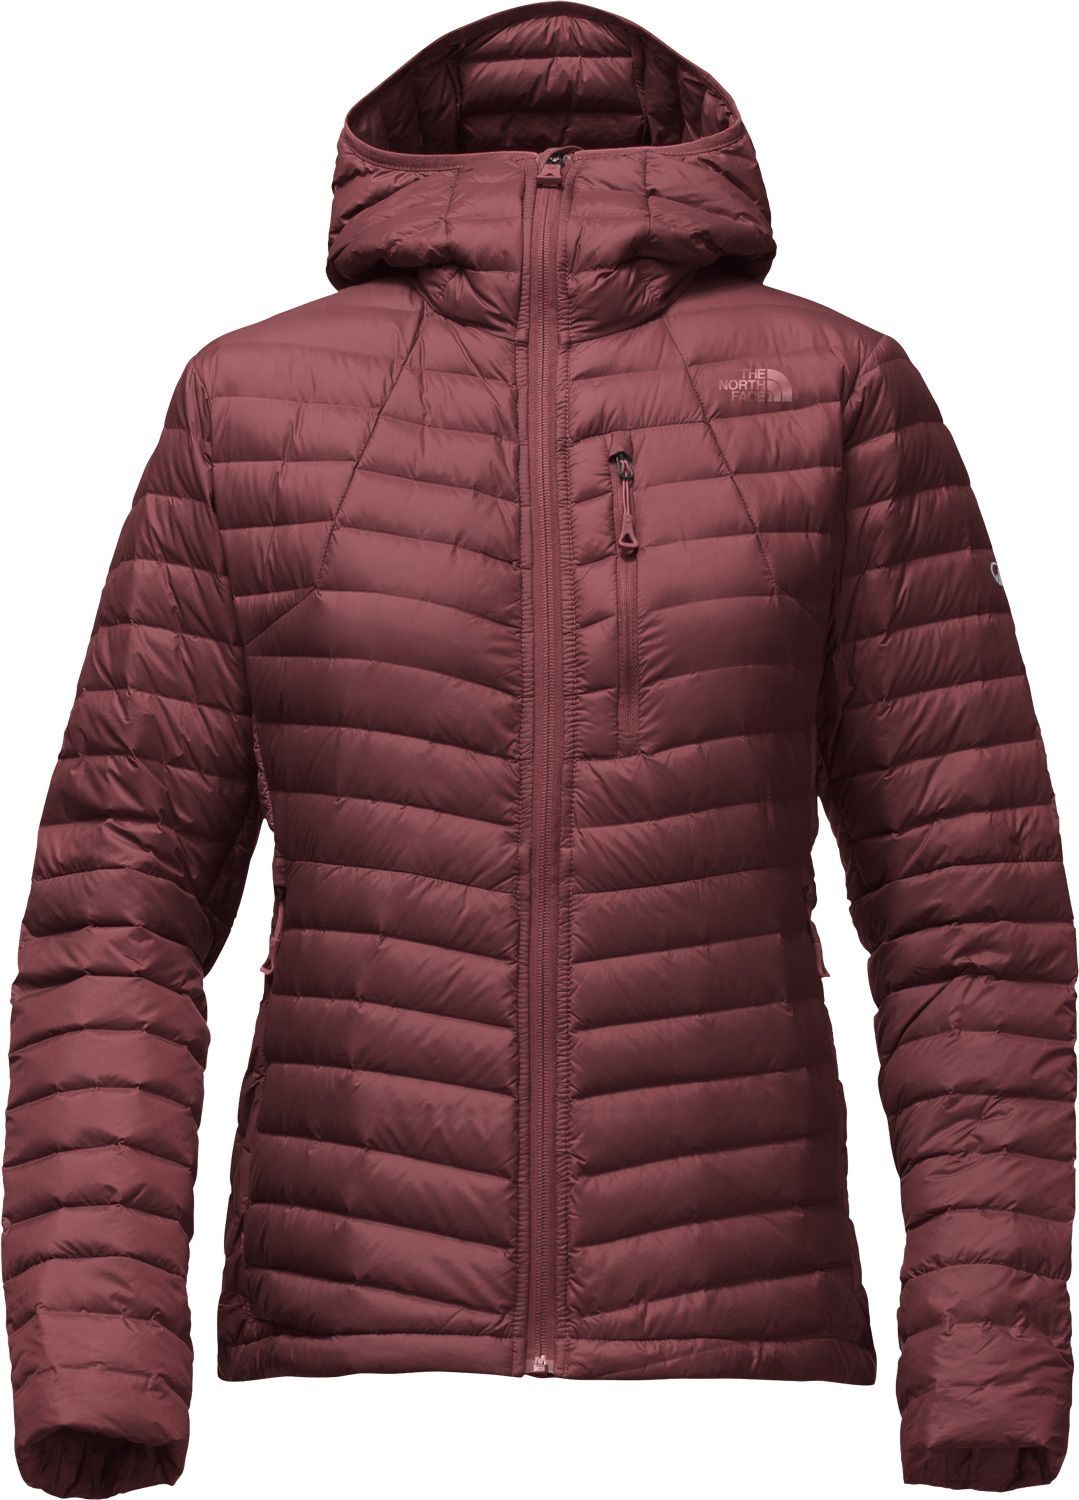 Women's The North Face Jackets | DICK'S Sporting Goods